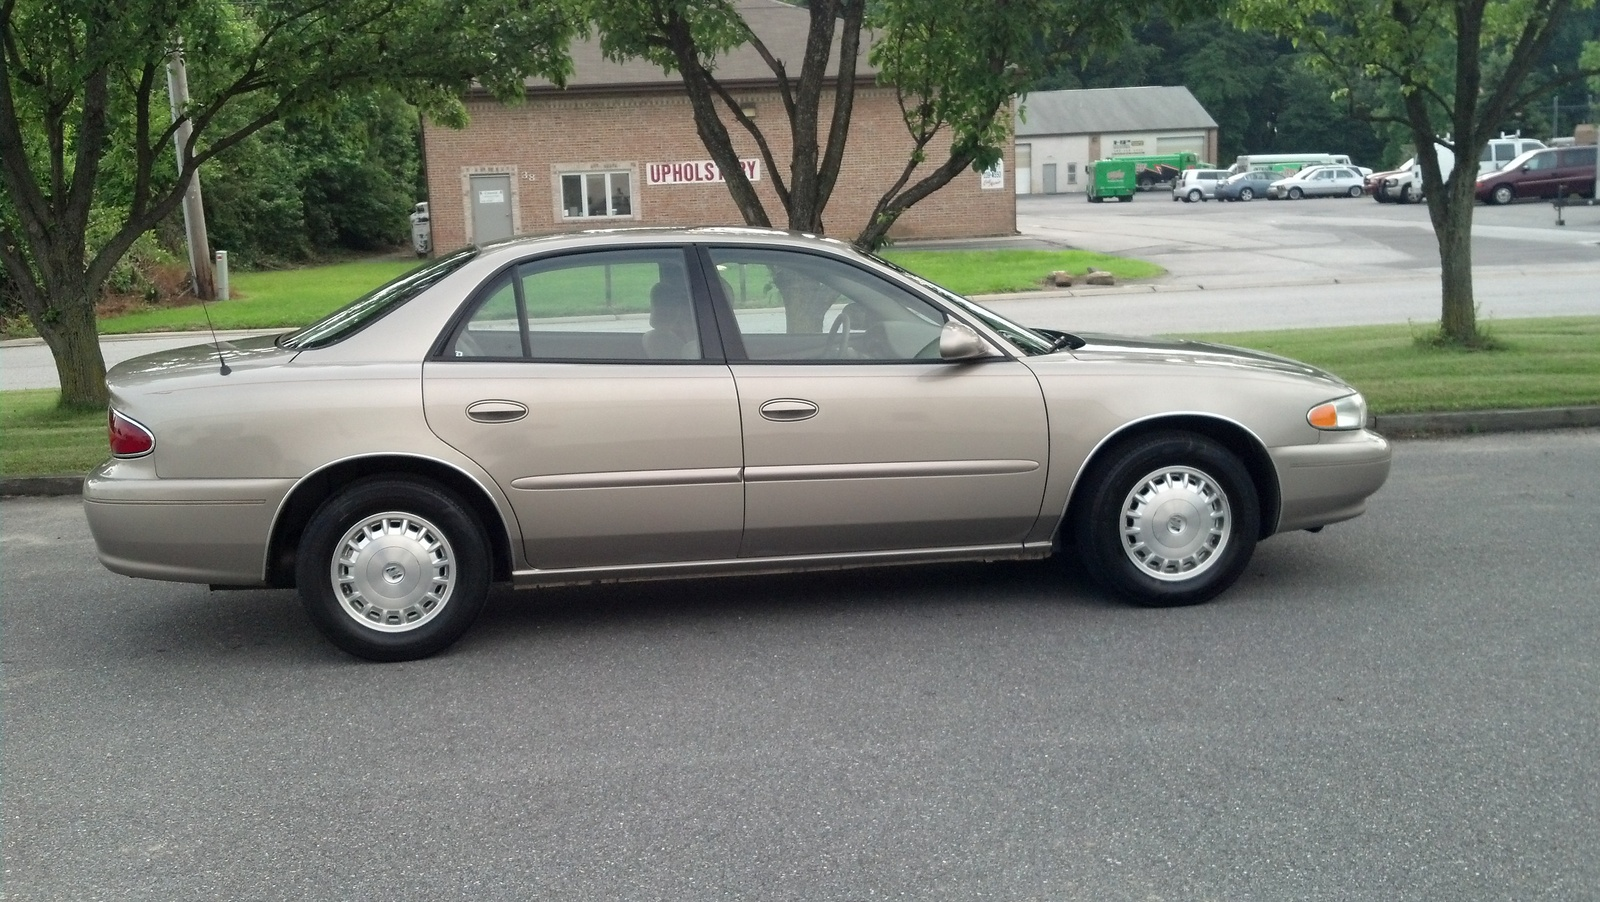 1993 buick regal with 2003 Buick Century Pictures C5300 Pi36277488 on 1998 Buick Lesabre Truck 1 furthermore Buick Enclave 3 6 2010 Specs And Images moreover 1999 Buick Riviera further Model furthermore 1980s Cars.